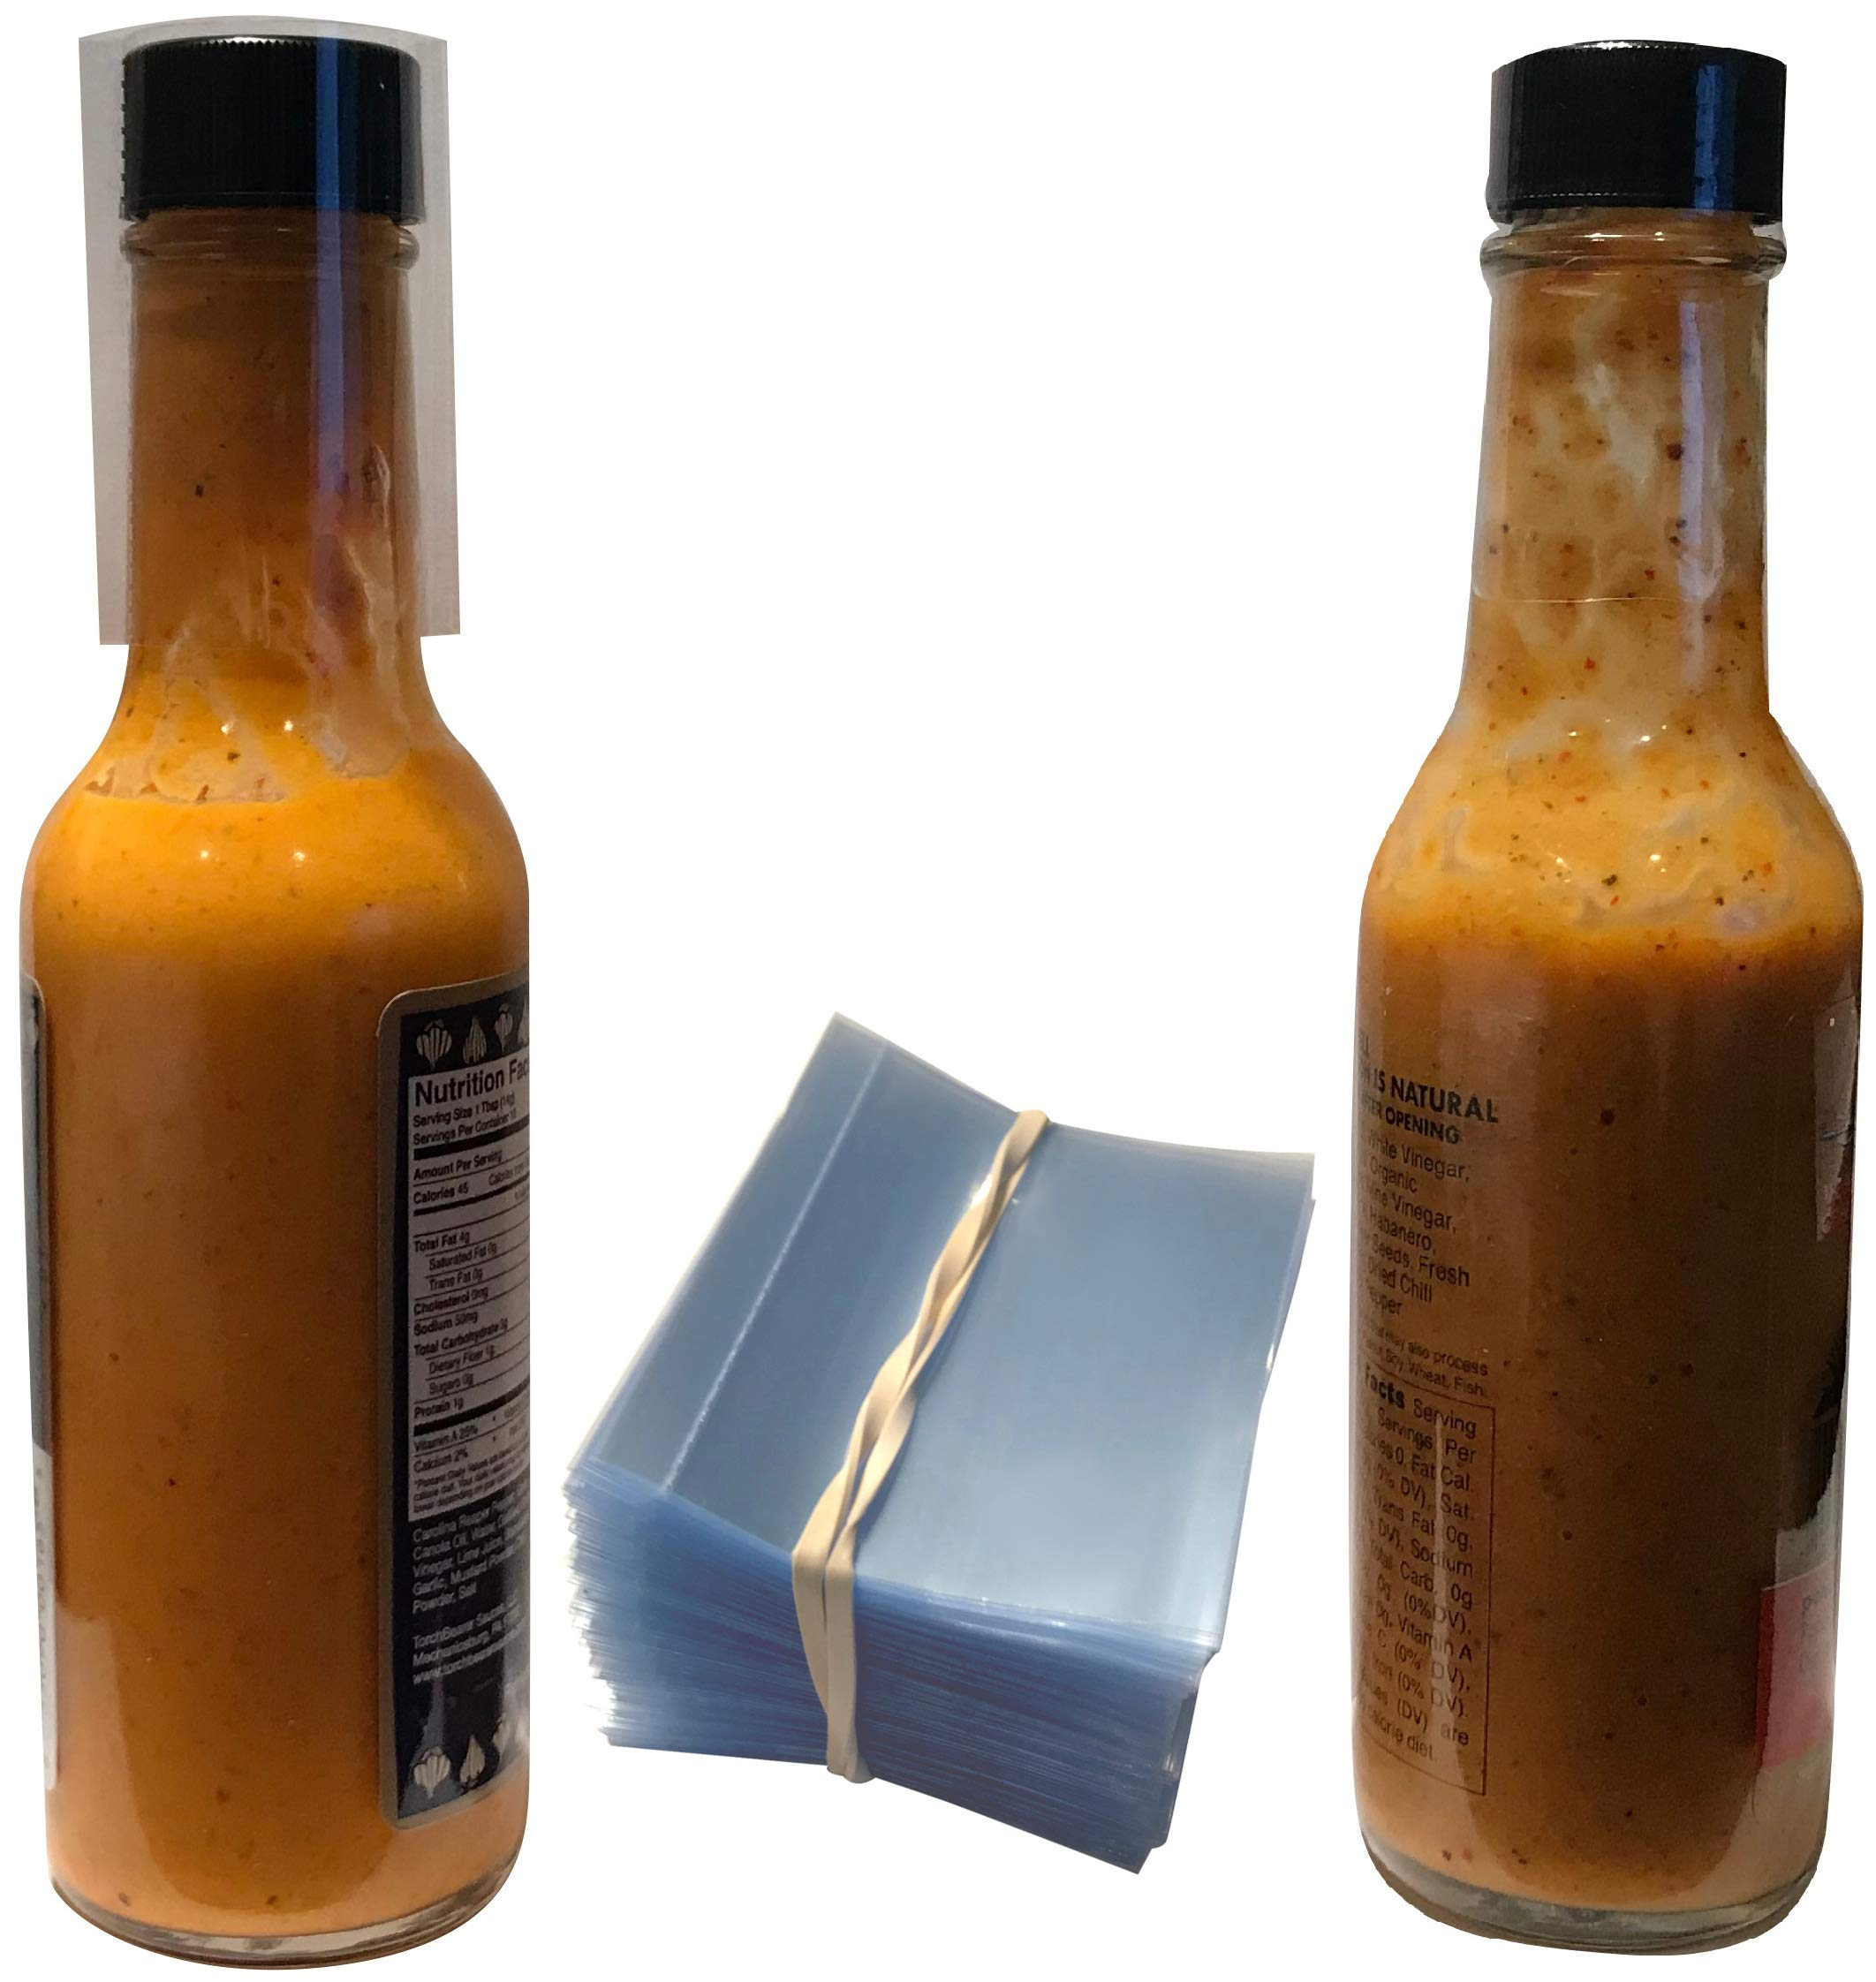 "Clear Perforated Shrink Bands for Hot Sauce Bottles and Woozy Bottles [3/4-1"" Diameter] (250 Pack)"